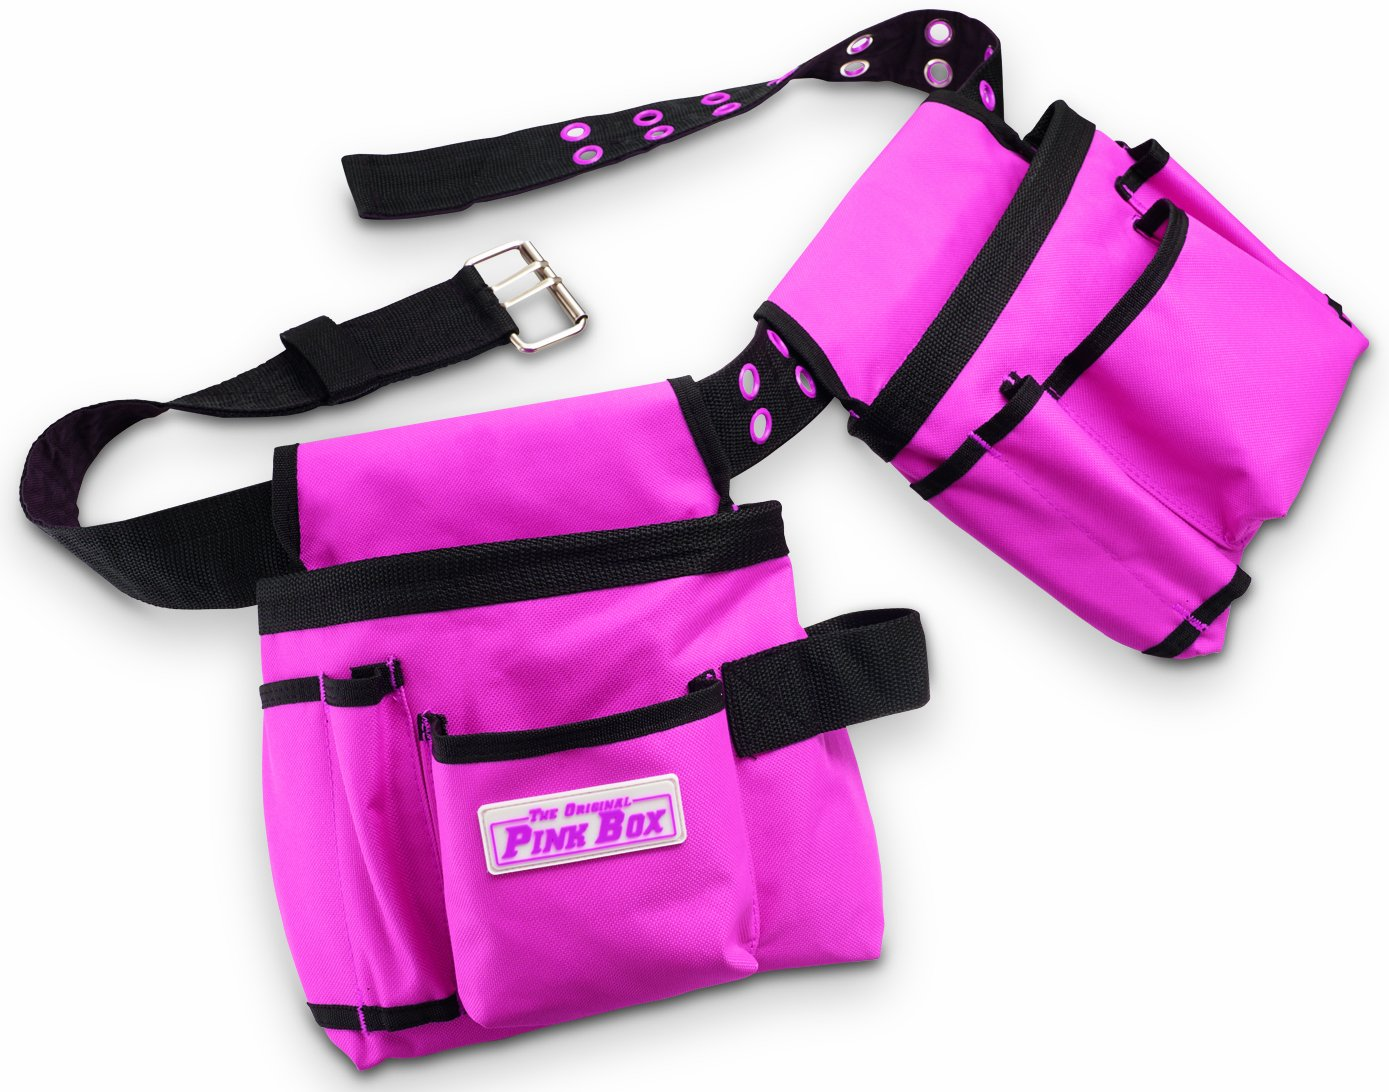 The Original Pink Box PB2BELT Tool Belt, 10-Pocket, Pink by The Original Pink Box